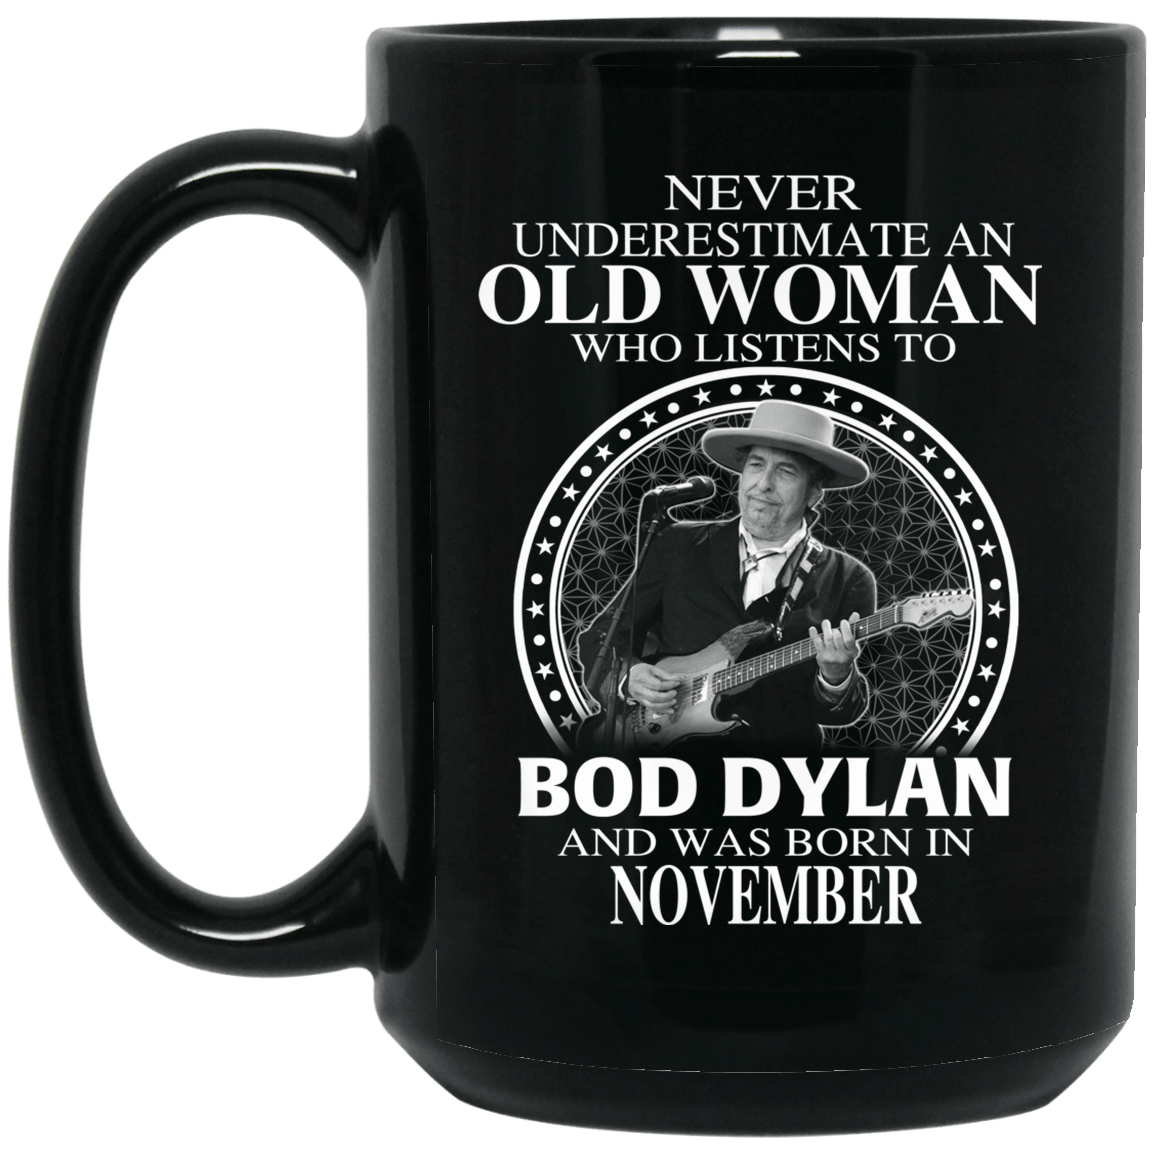 An Old Woman Who Listens To Bob Dylan And Was Born In November Mug 1066-10182-76154133-49311 - Tee Ript